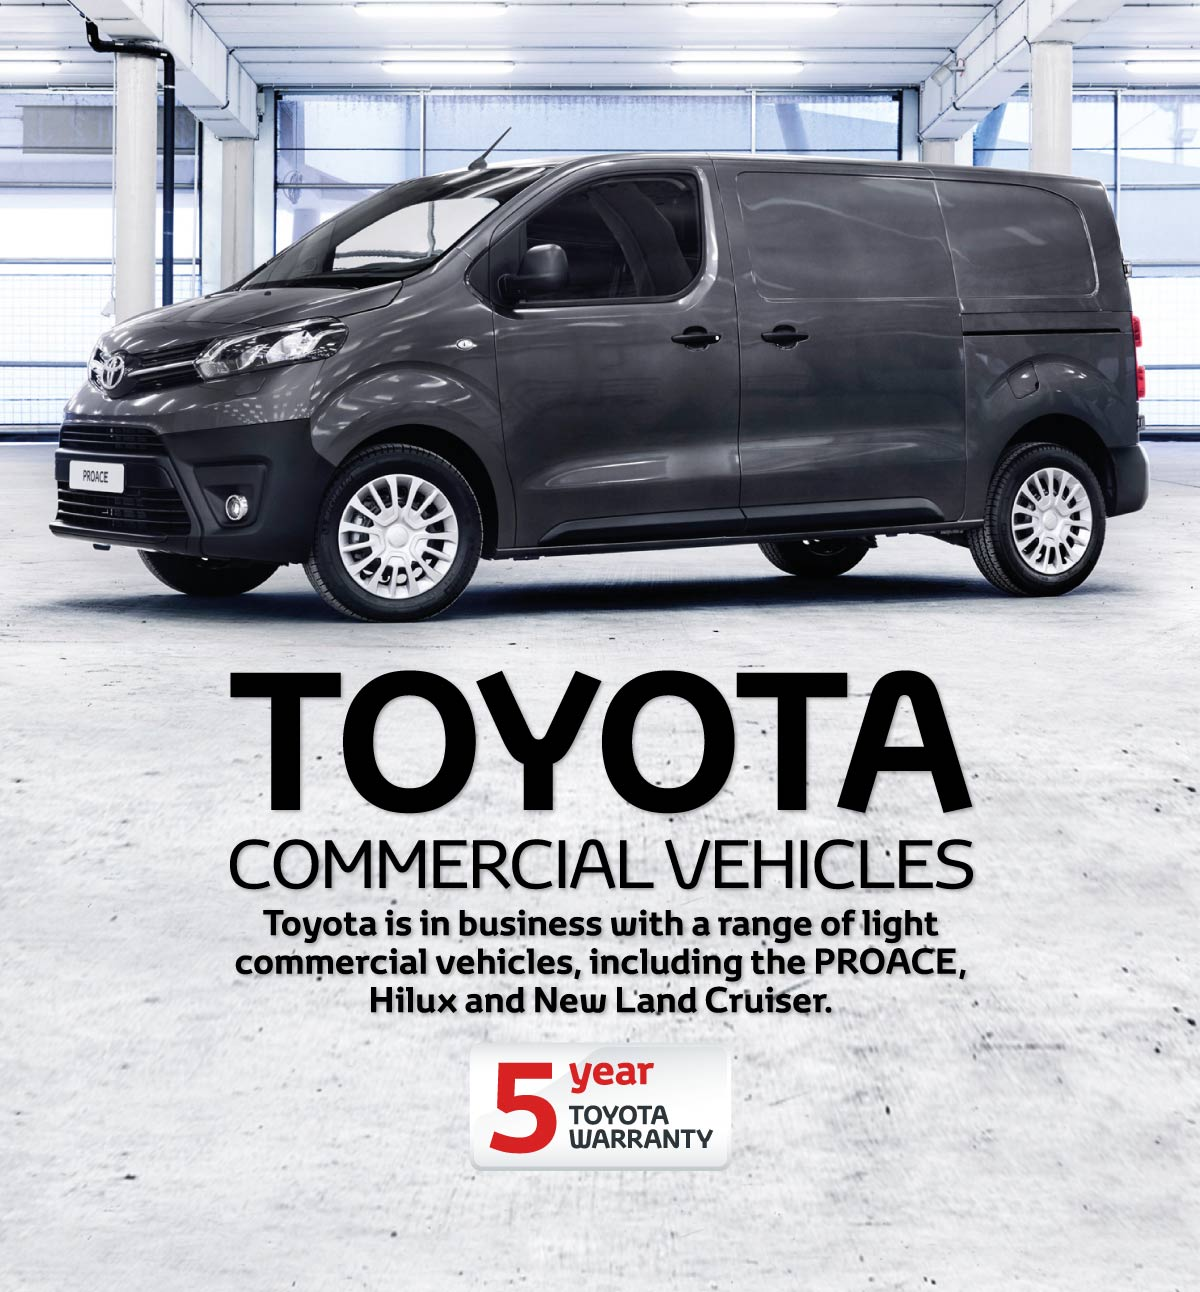 [Toyota Generic] Toyota Commercial Vehicles Banner 1